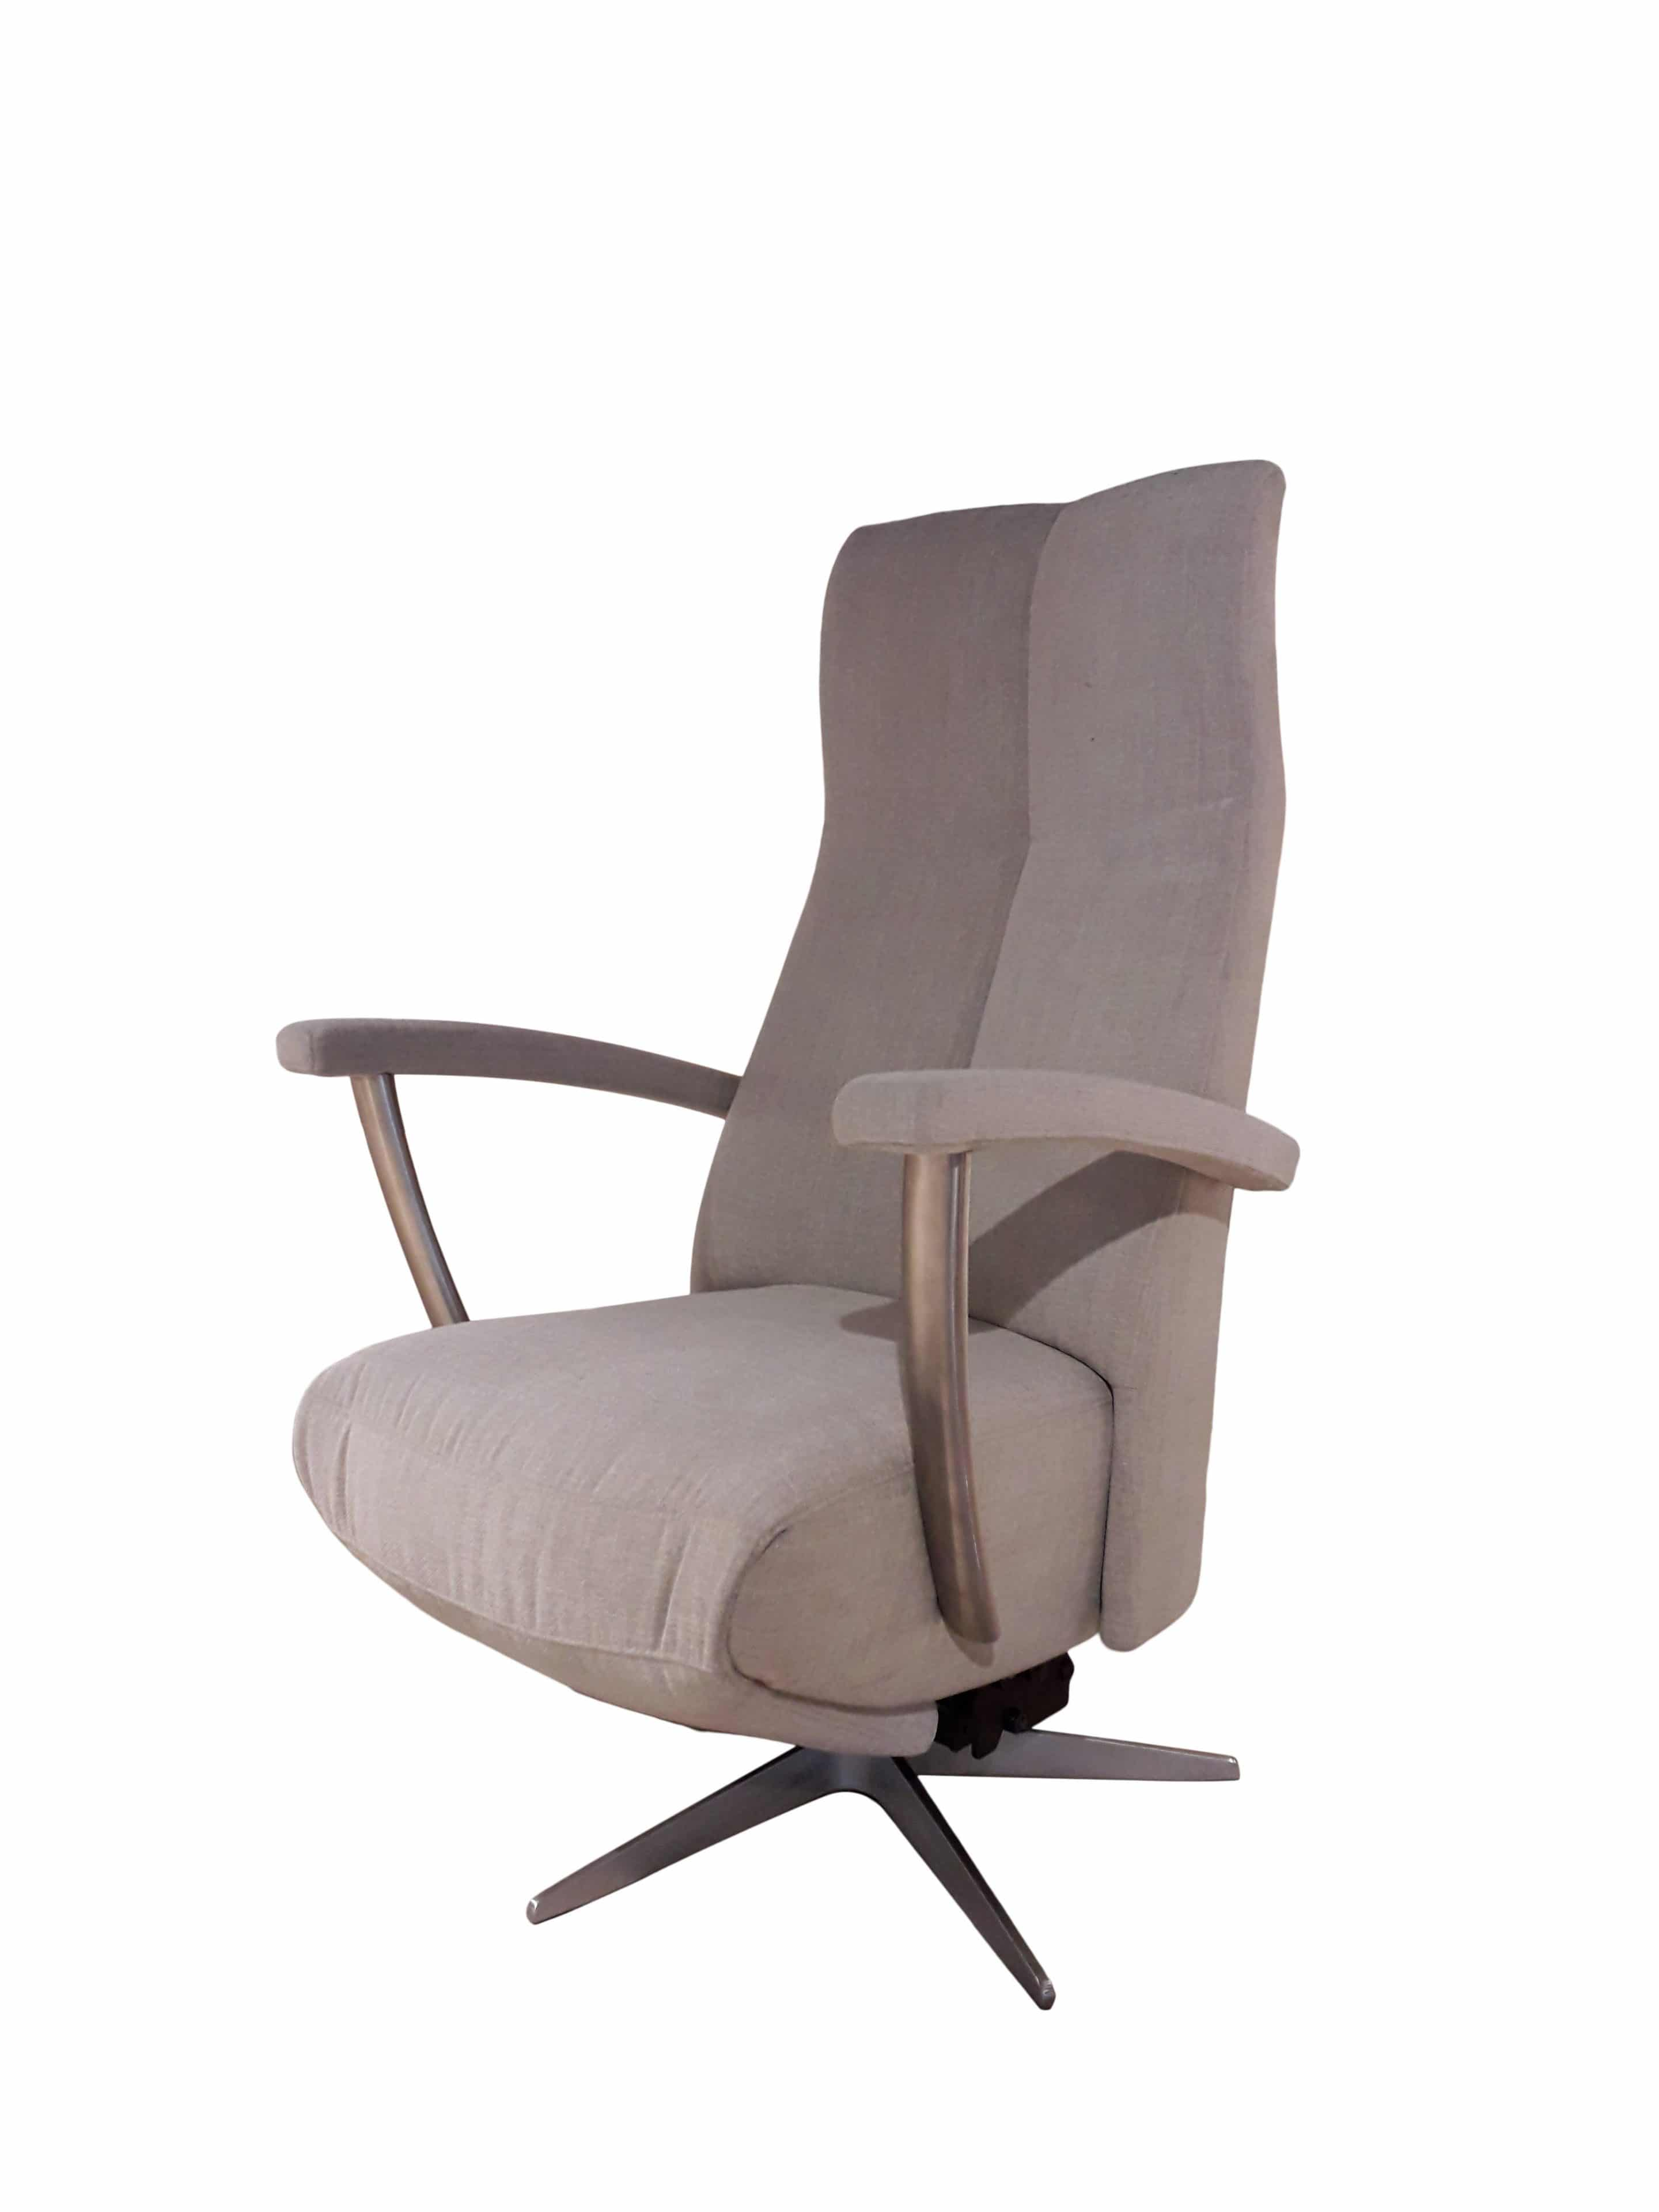 Fauteuil Zw 78 Scaled